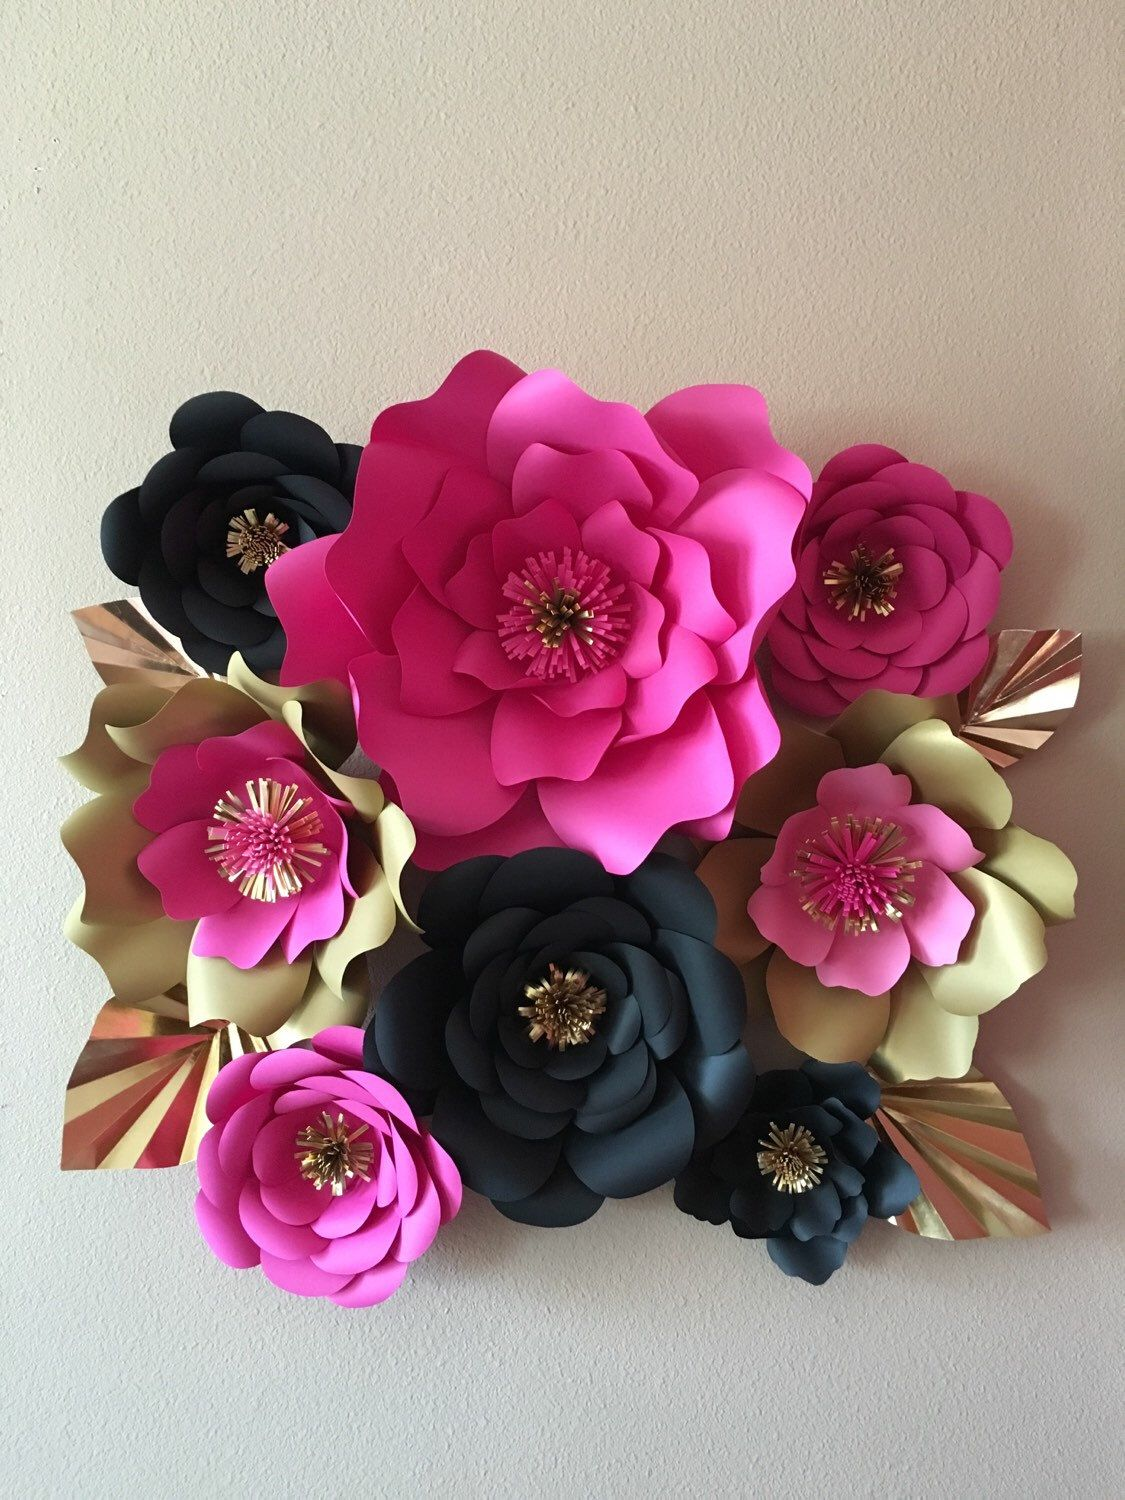 Pin by Lisette on anero  Pinterest  Paper Flowers Flowers and Paper